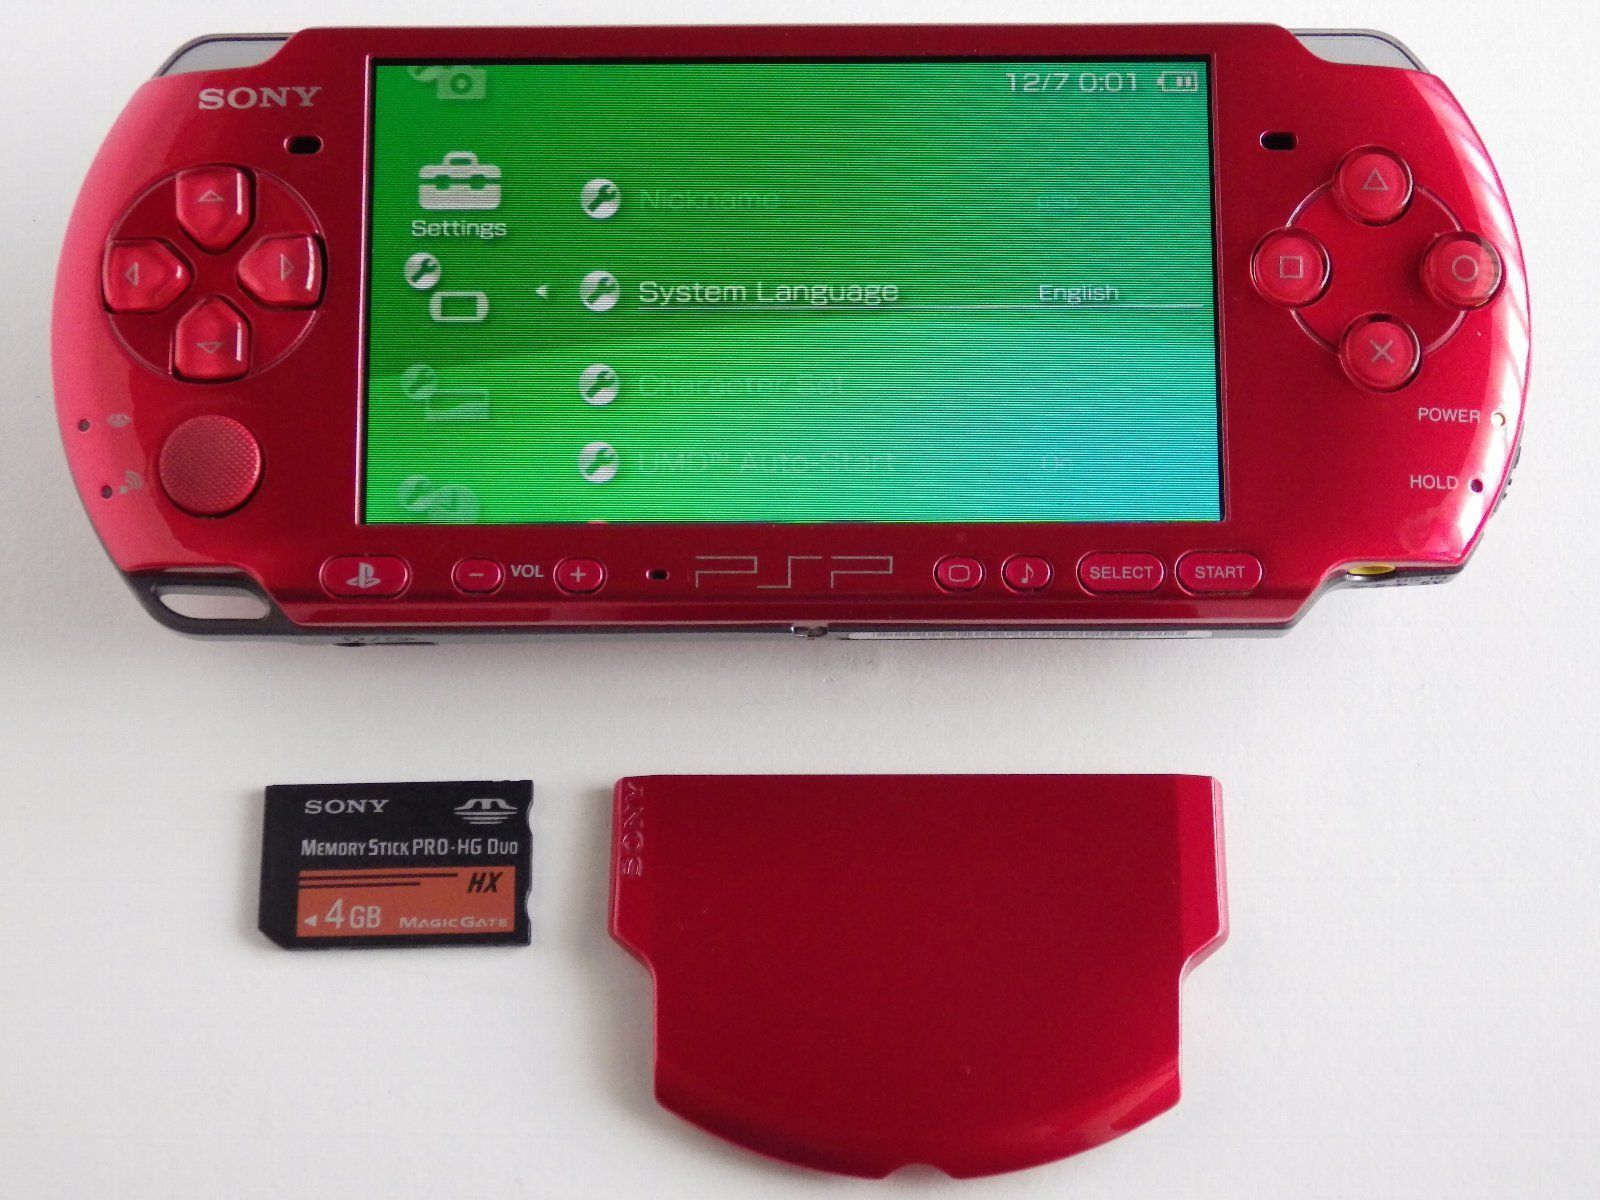 PSP 3000 Console Radiant Red Handheld System w Memory Battery Feel Free All UMD https://t.co/0vEj7JNNSo https://t.co/LP56kN8DXh